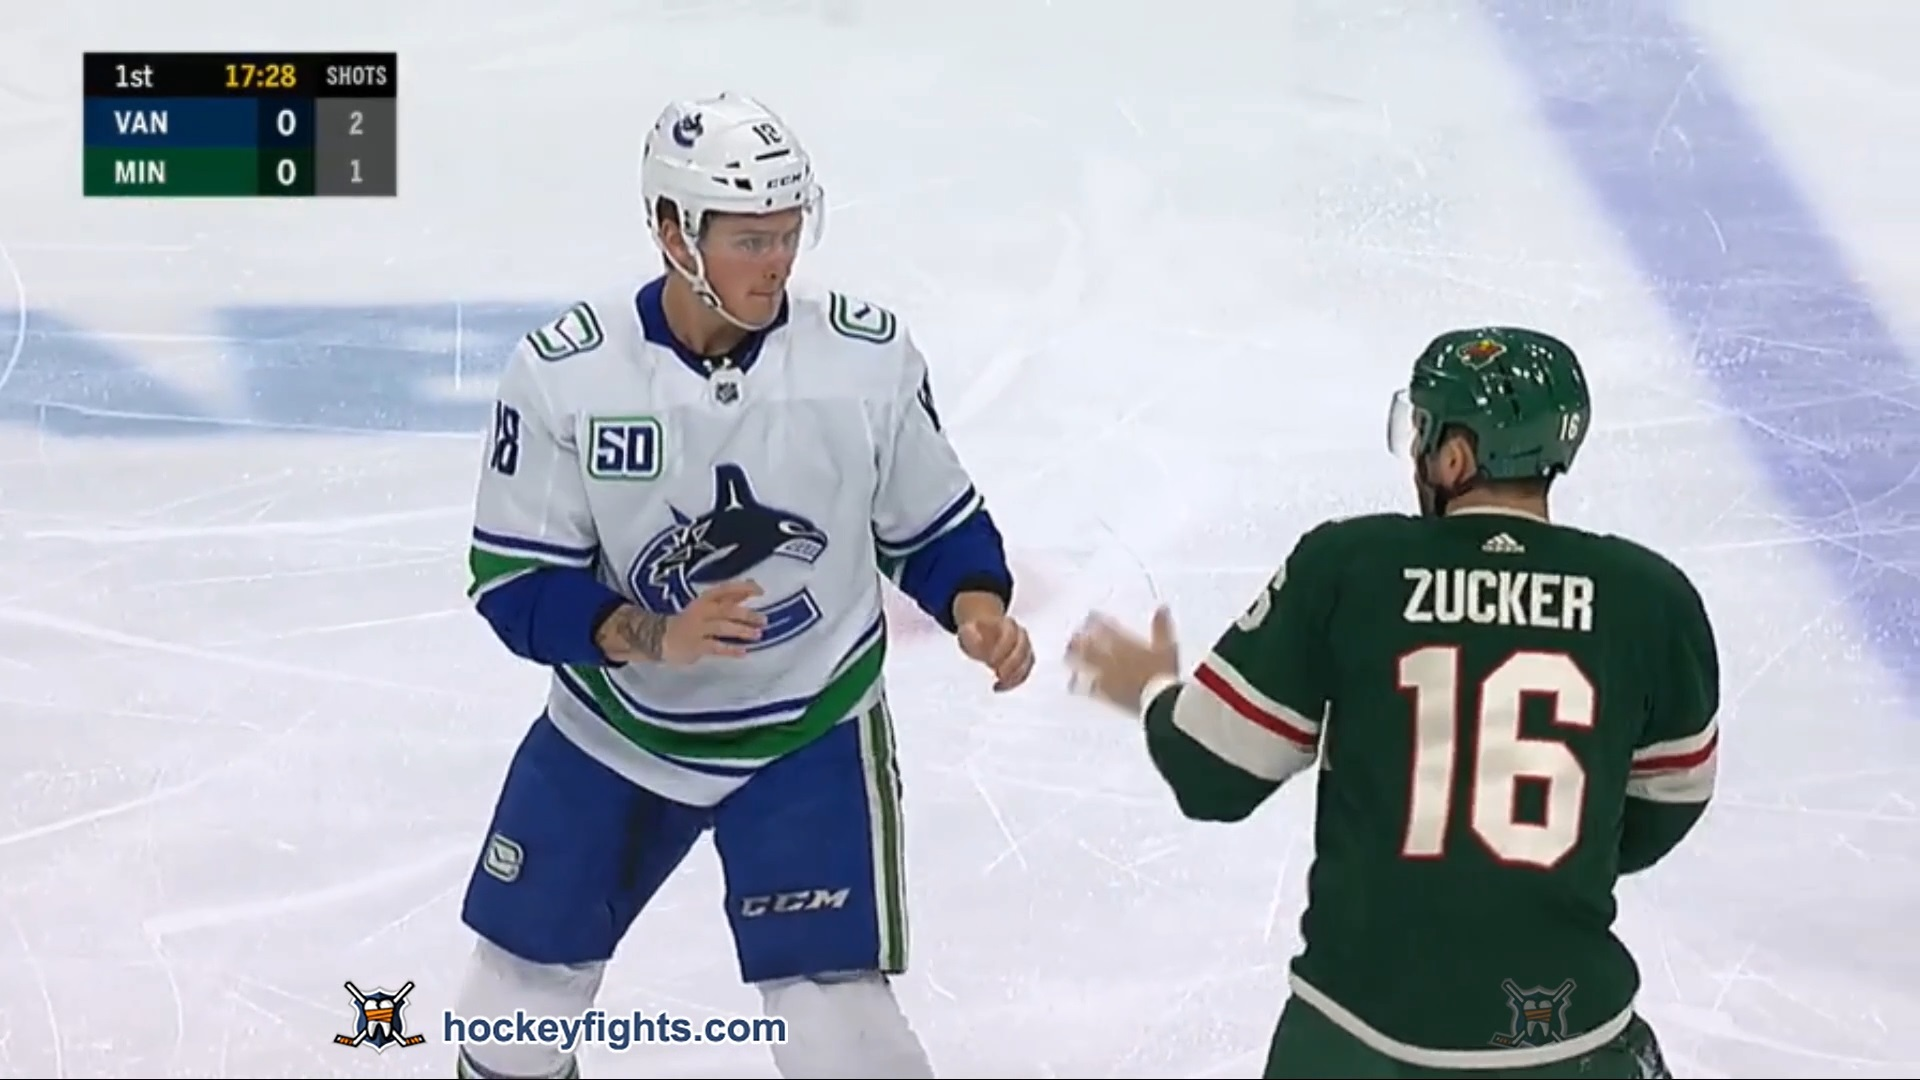 Jason Zucker vs. Jake Virtanen